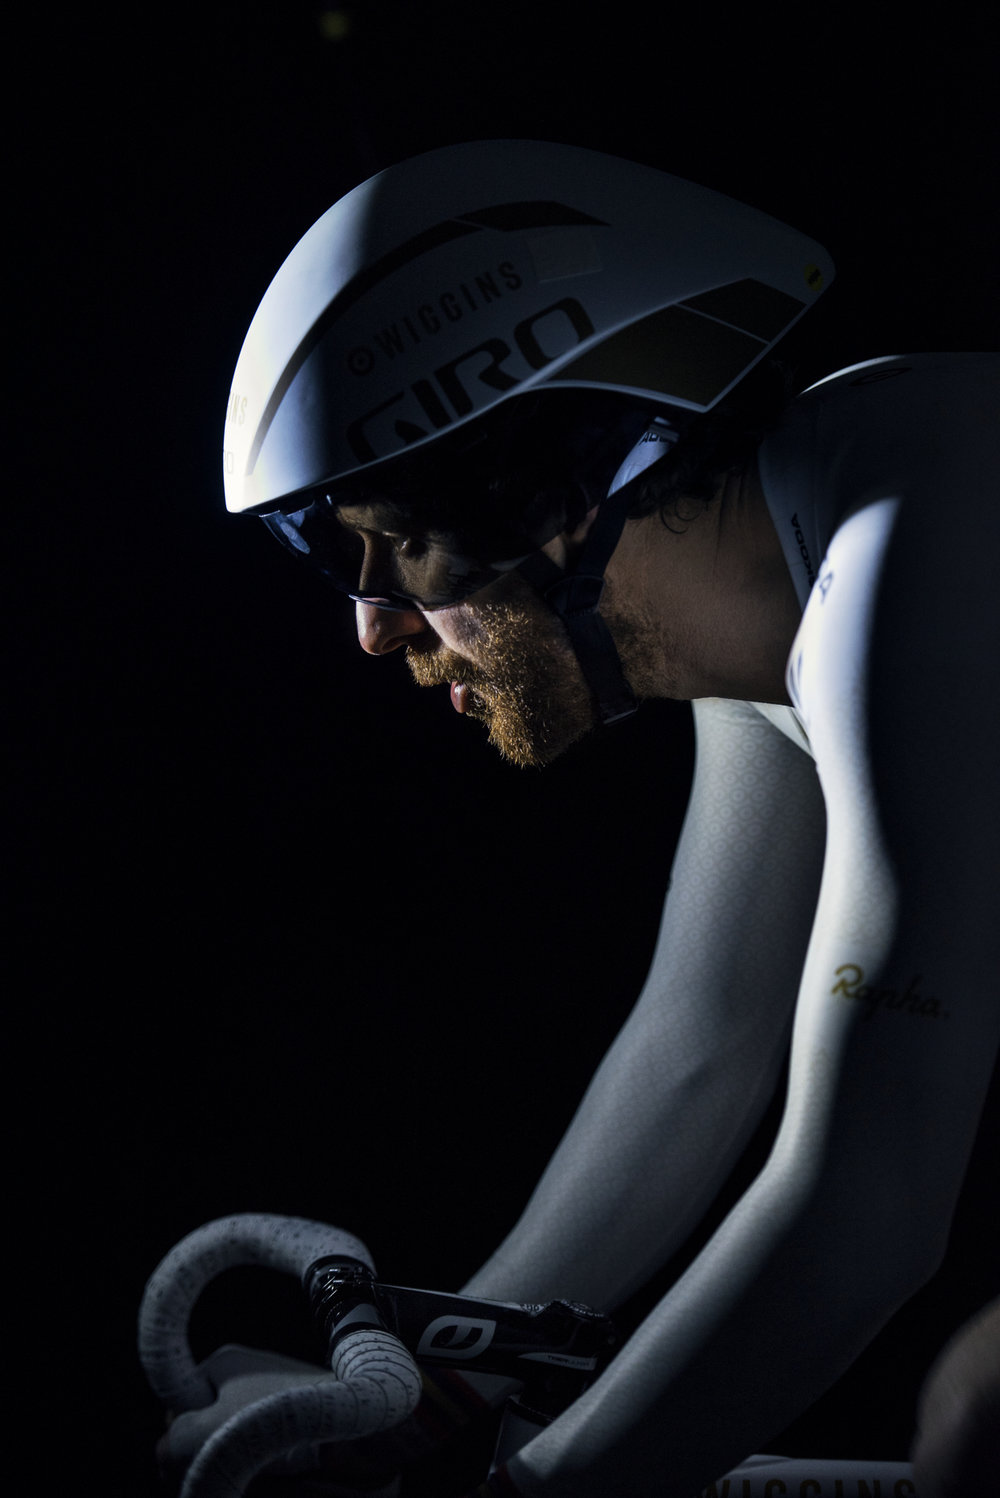 Sir Bradley, aka Wiggo, in the hot seat for Skoda. Exciting to look down the barrel and see this legend training I have to say. I love this shot, for me the best imagery always lingers in the lulls between the main moments - that's where sports photography lives for me. Shot on Hasselblad H6D on a 50mm lens.